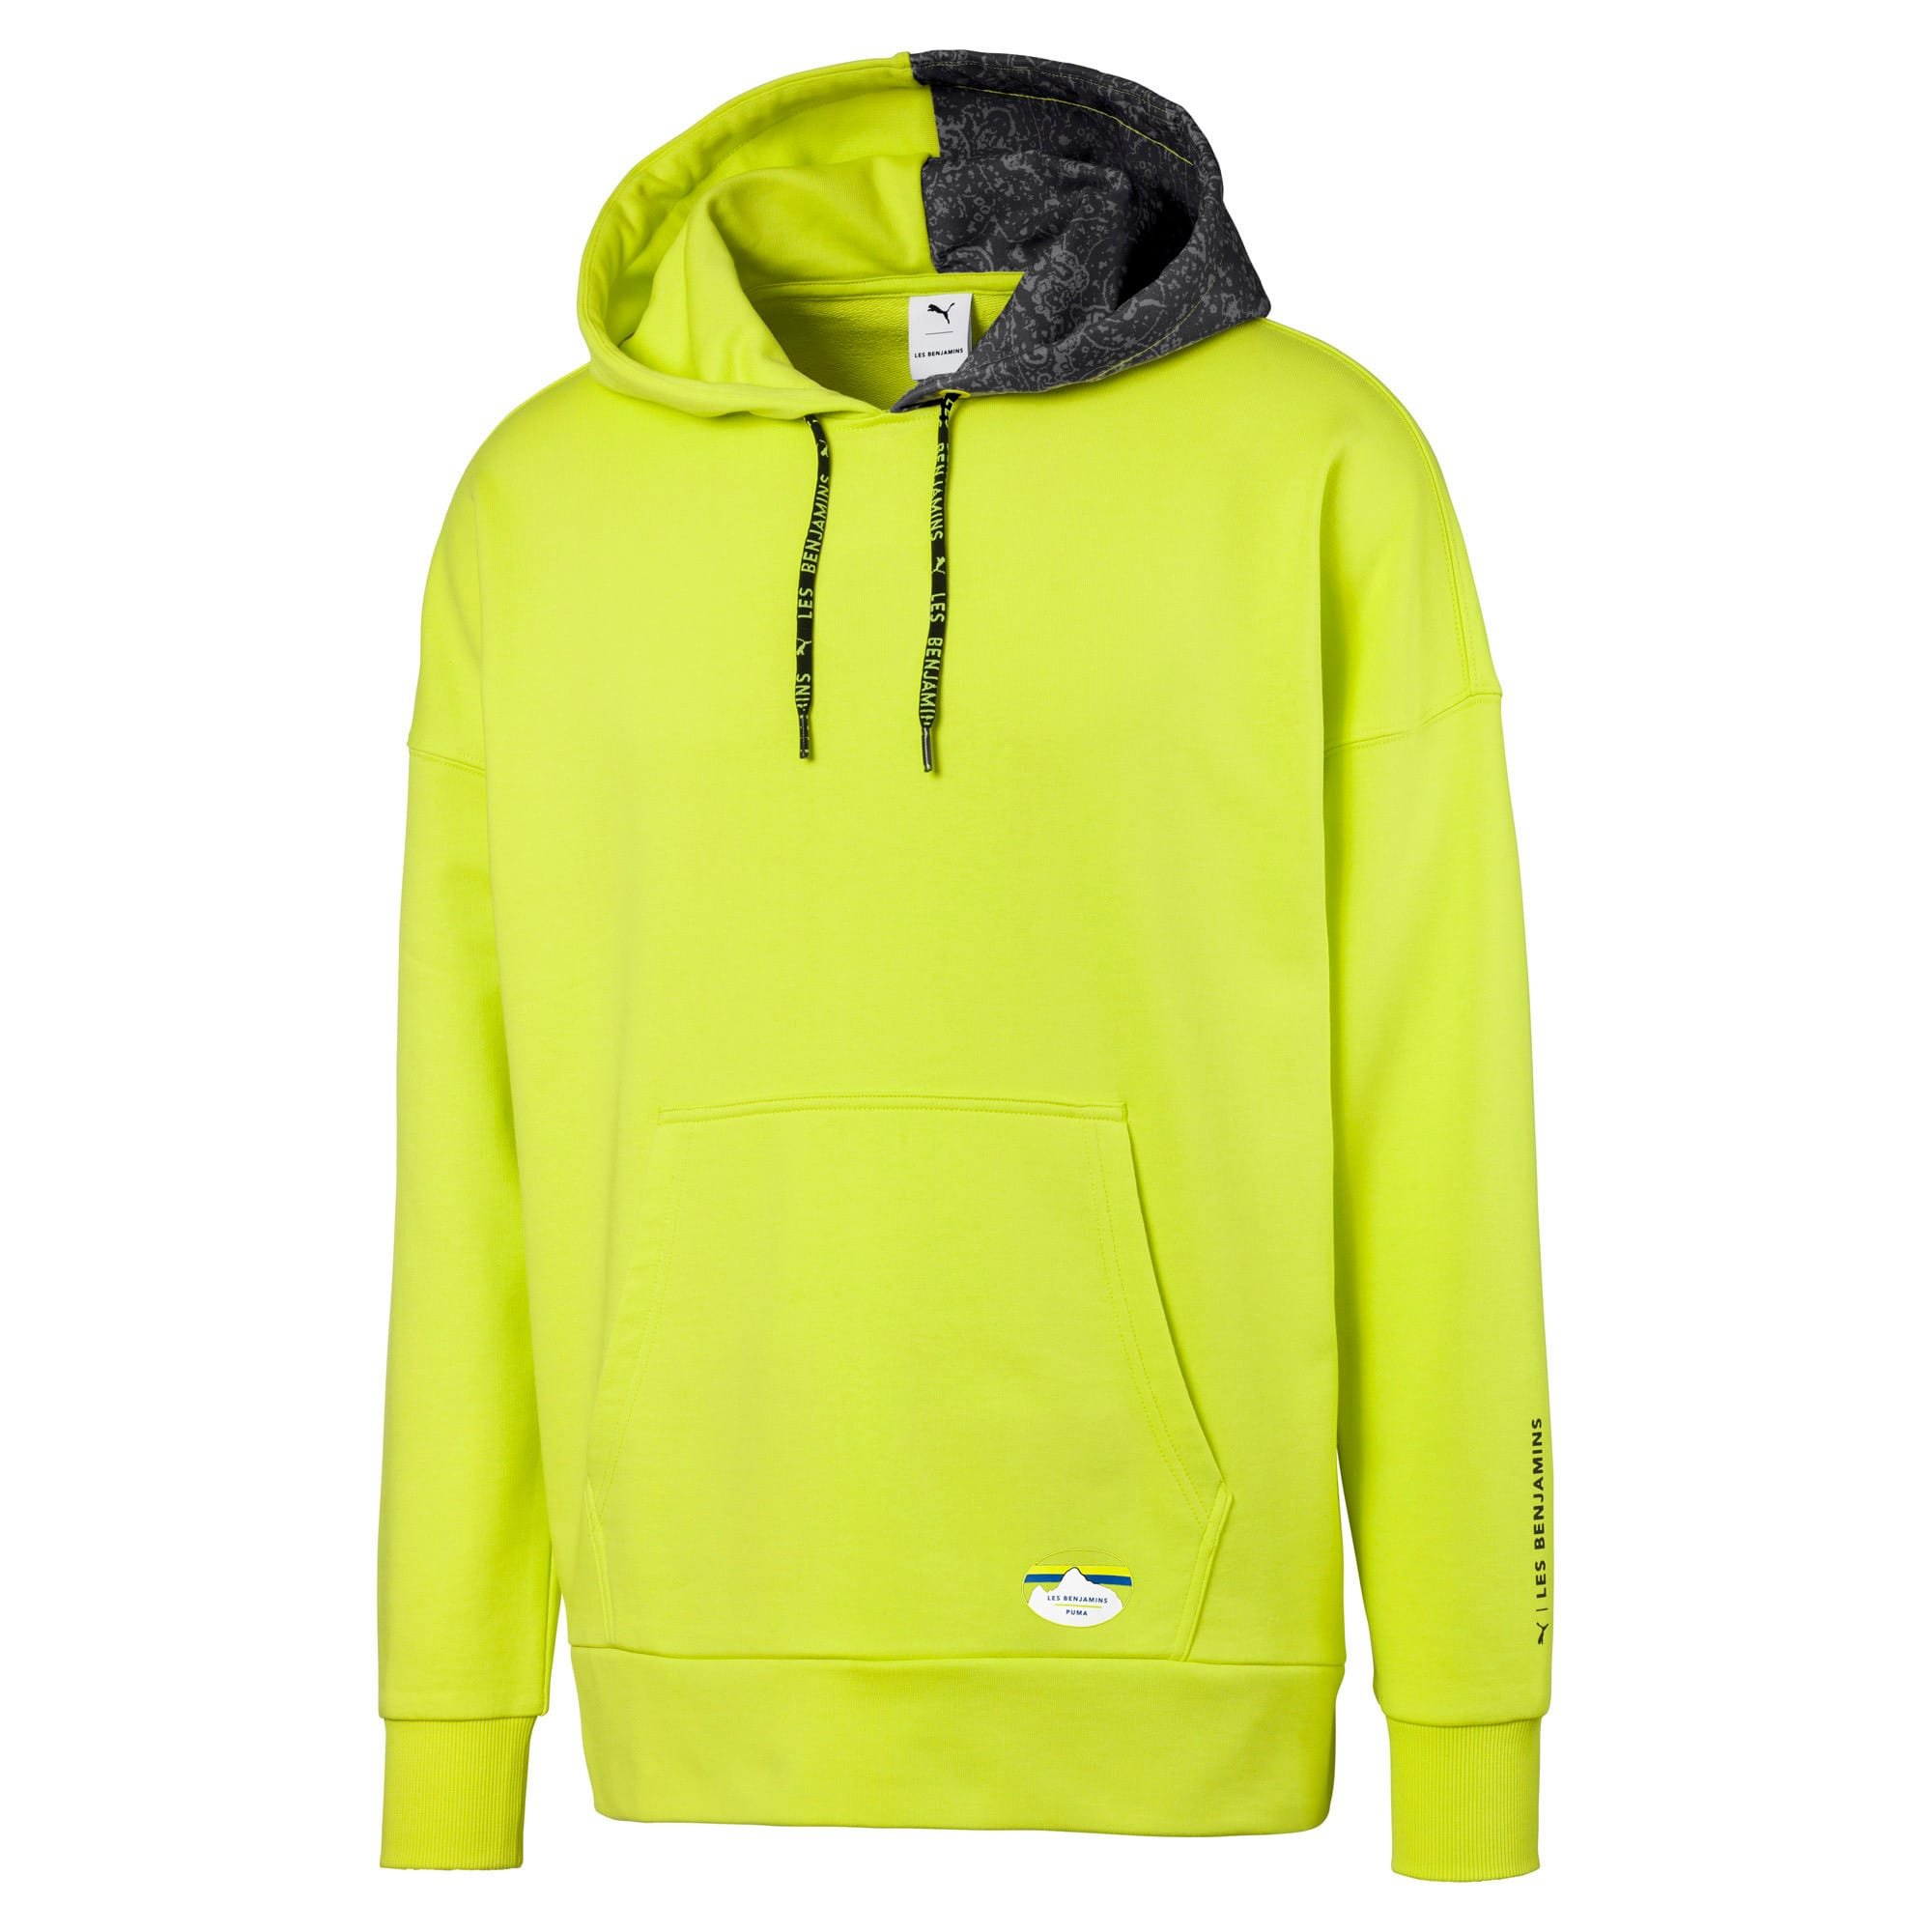 Thumbnail 1 of PUMA x LES BENJAMINS Men's Hoodie, Nrgy Yellow, medium